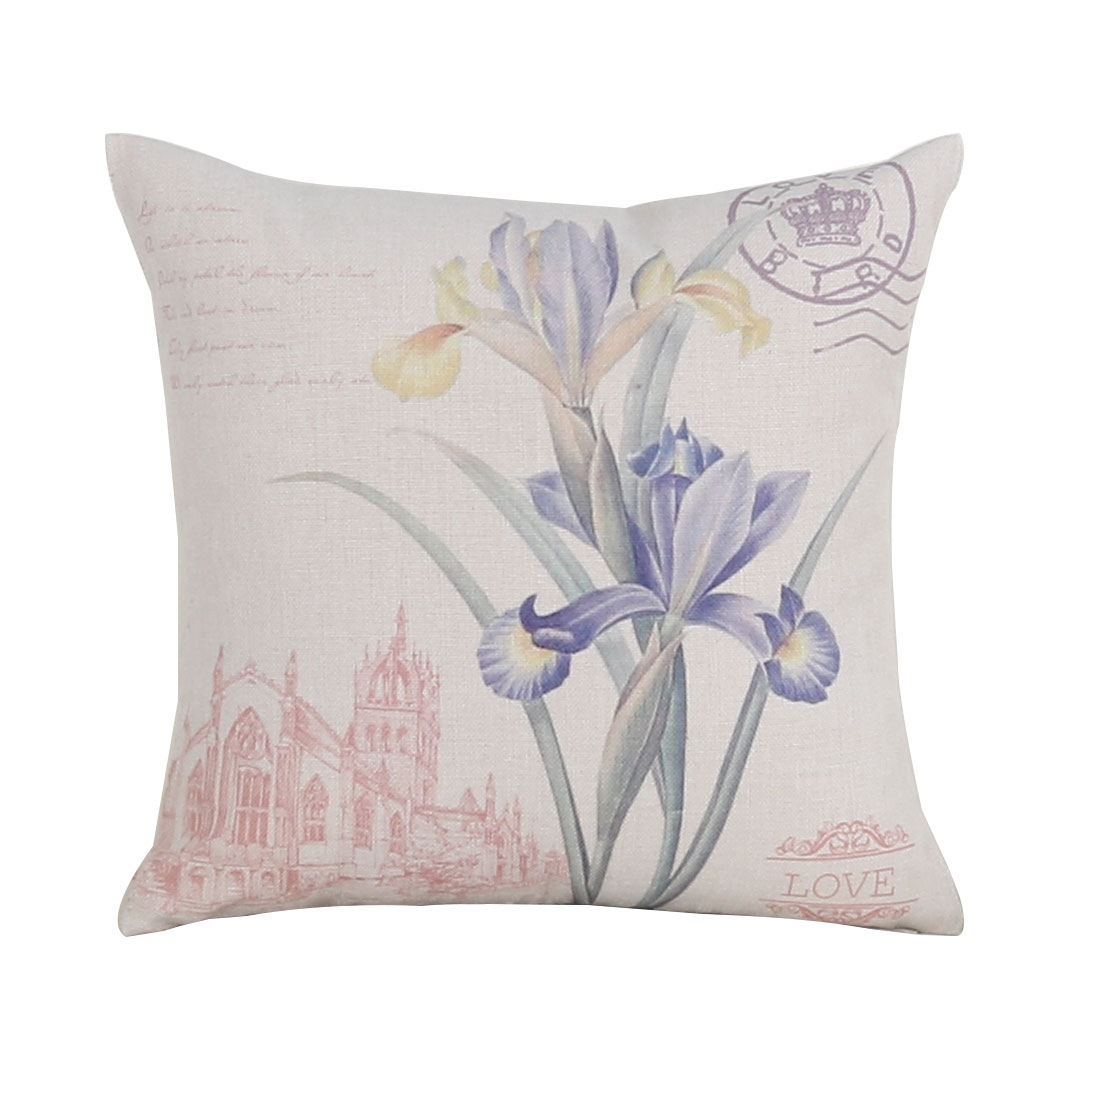 Sofa Couch Cotton Linen Flower-de-luce Pattern Waist Throw Cushion Cover Pillow Case